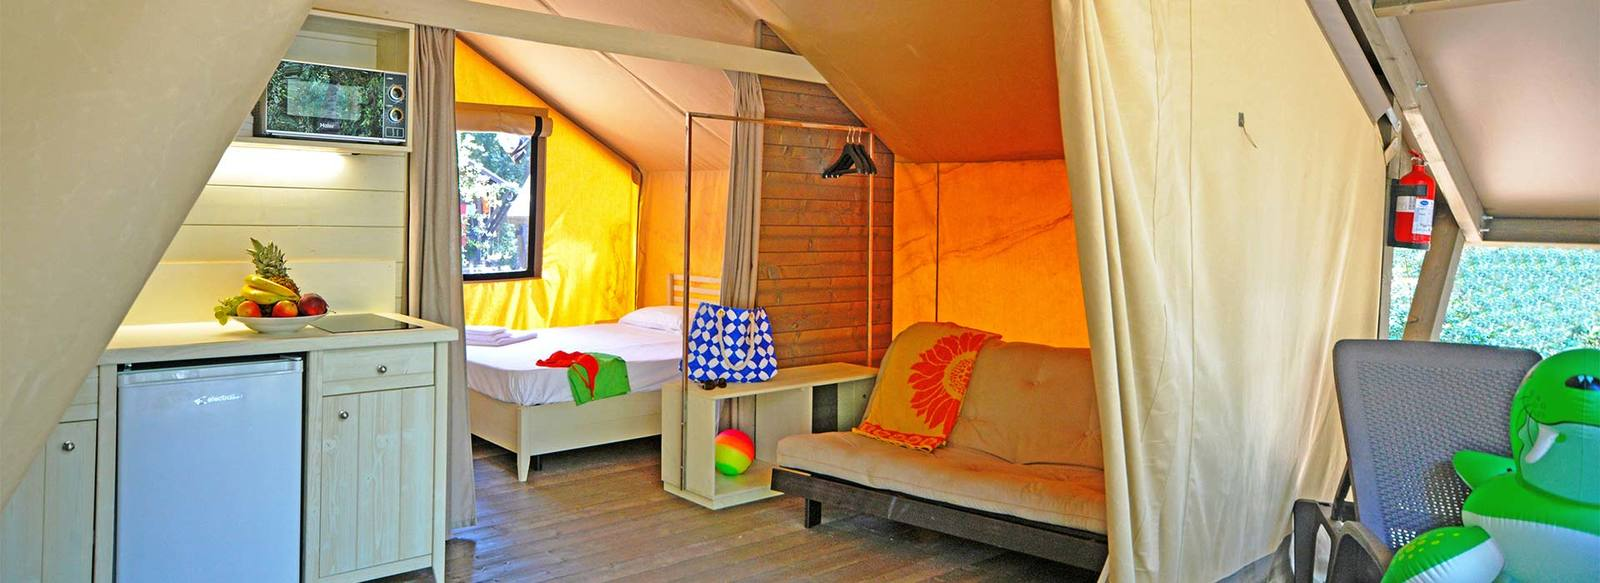 Glamping: Glamour & Camping tra mare e pineta